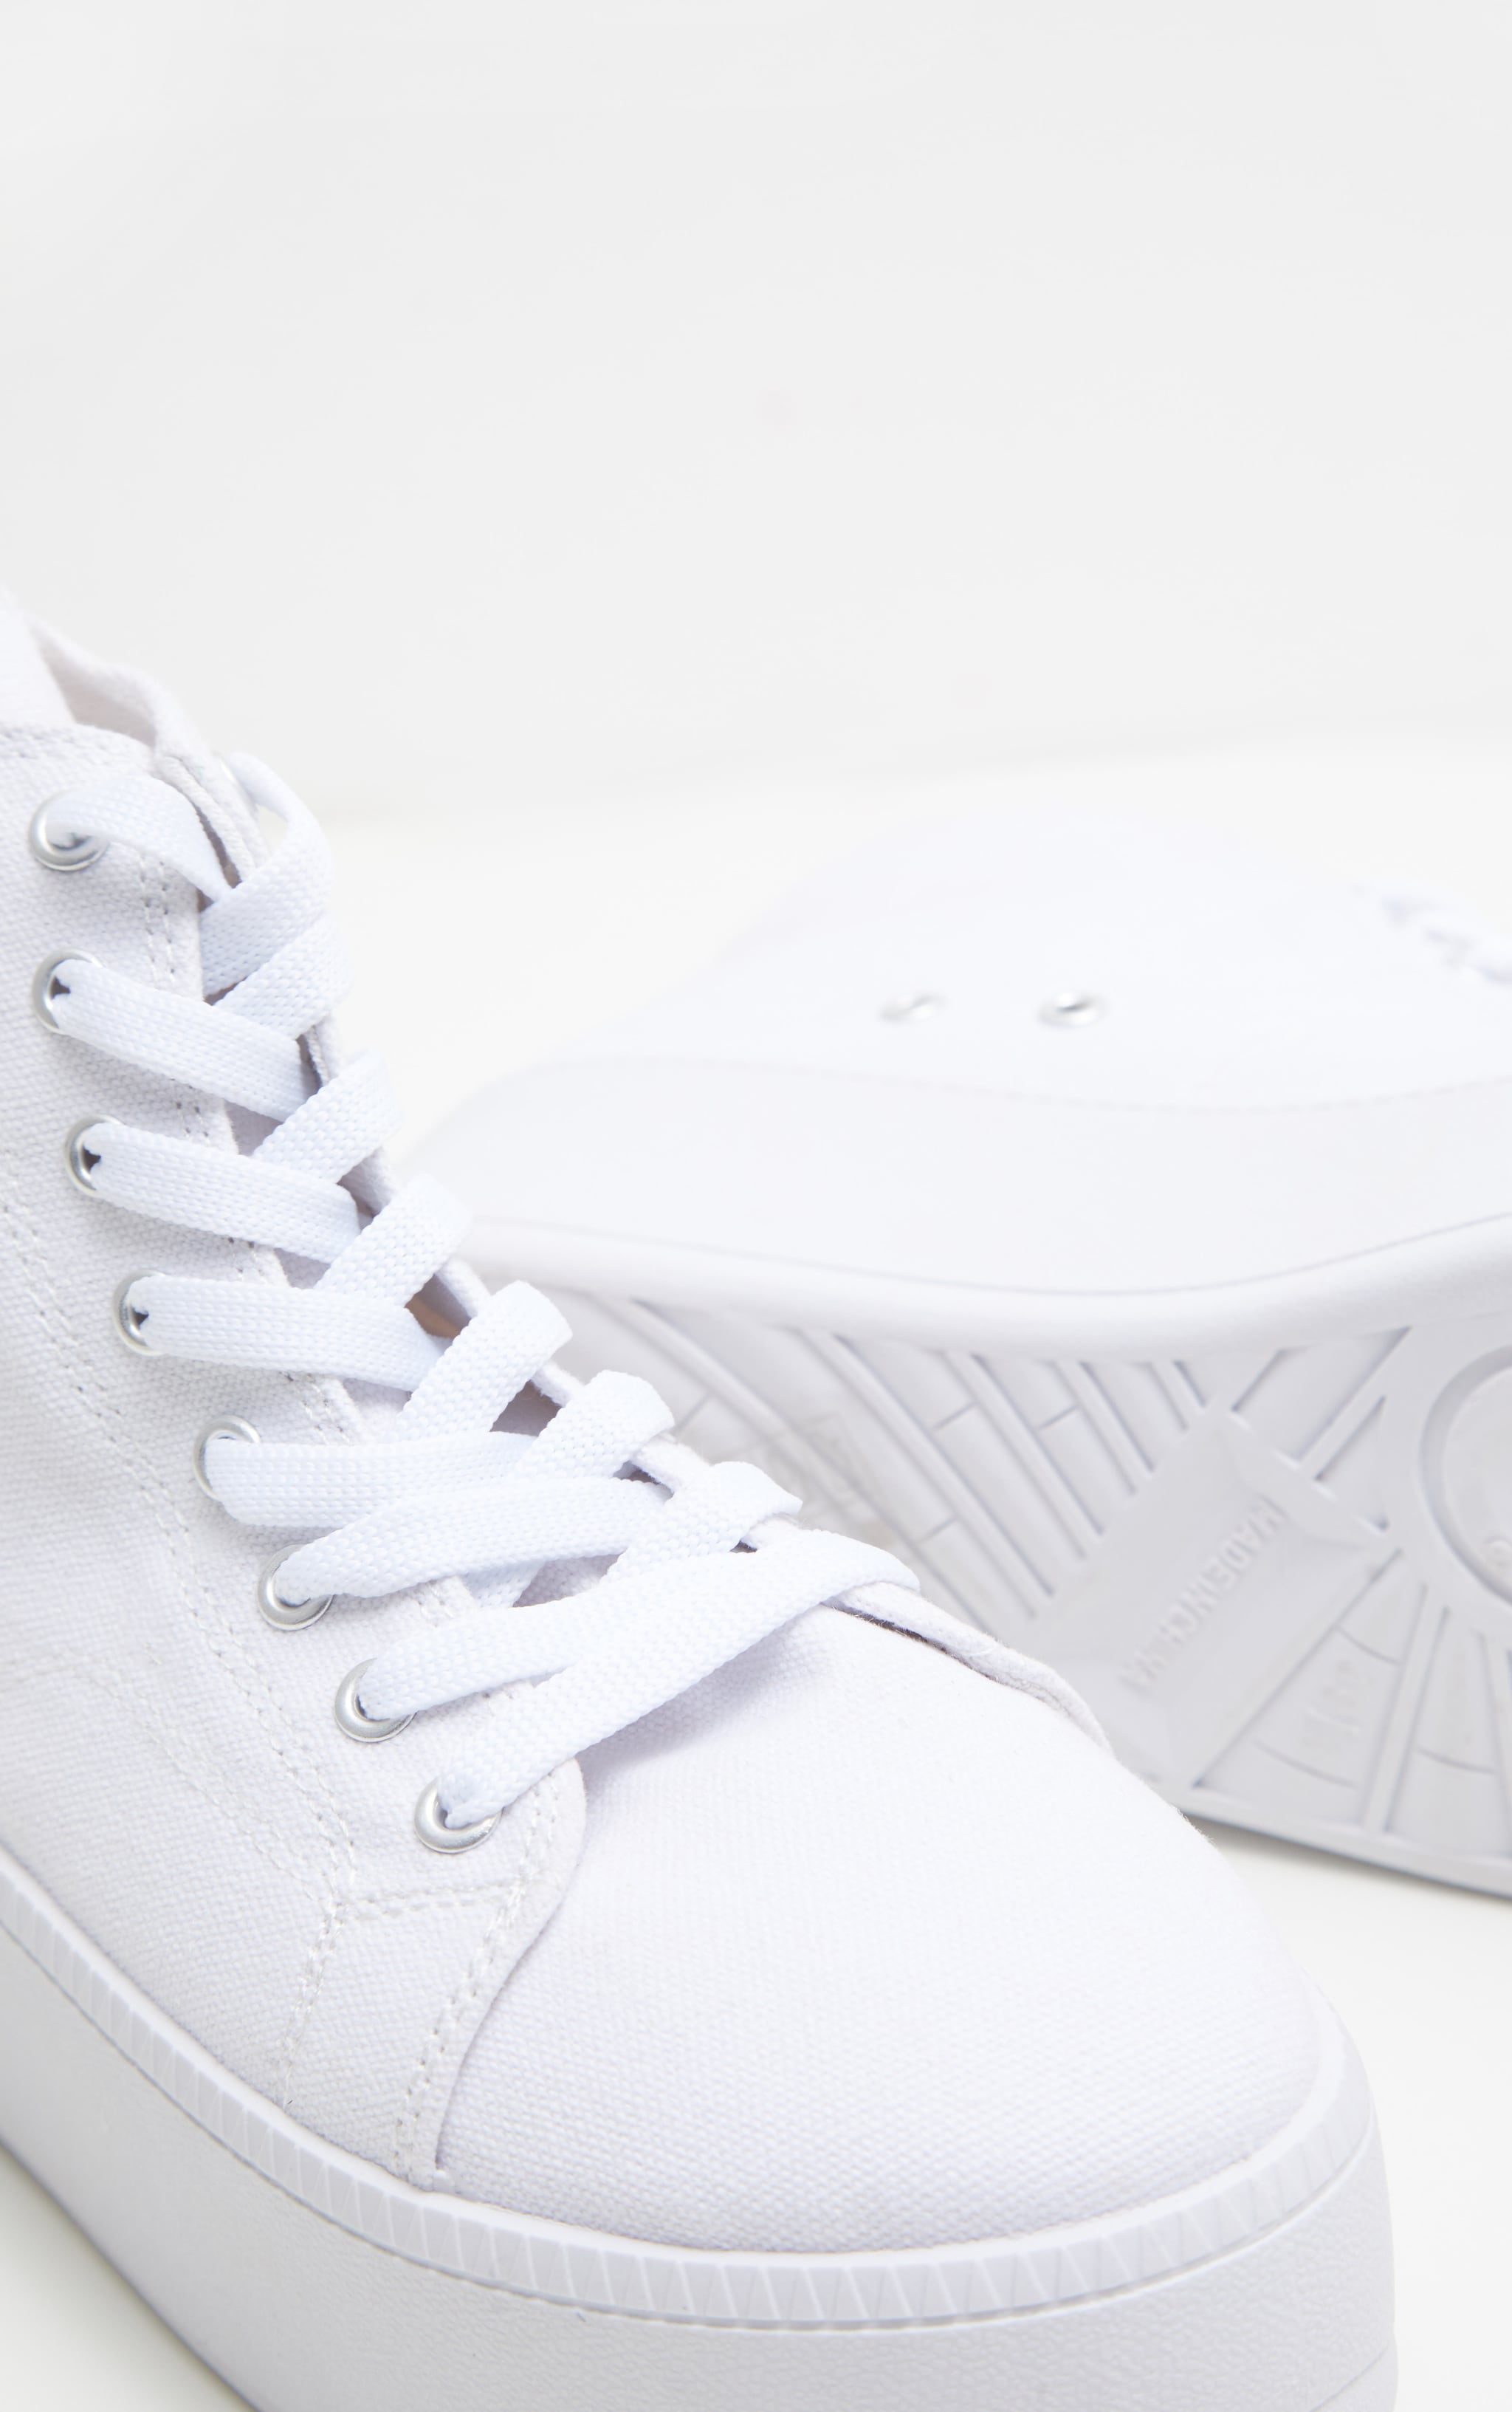 White Flatform High Top Sneakers 4